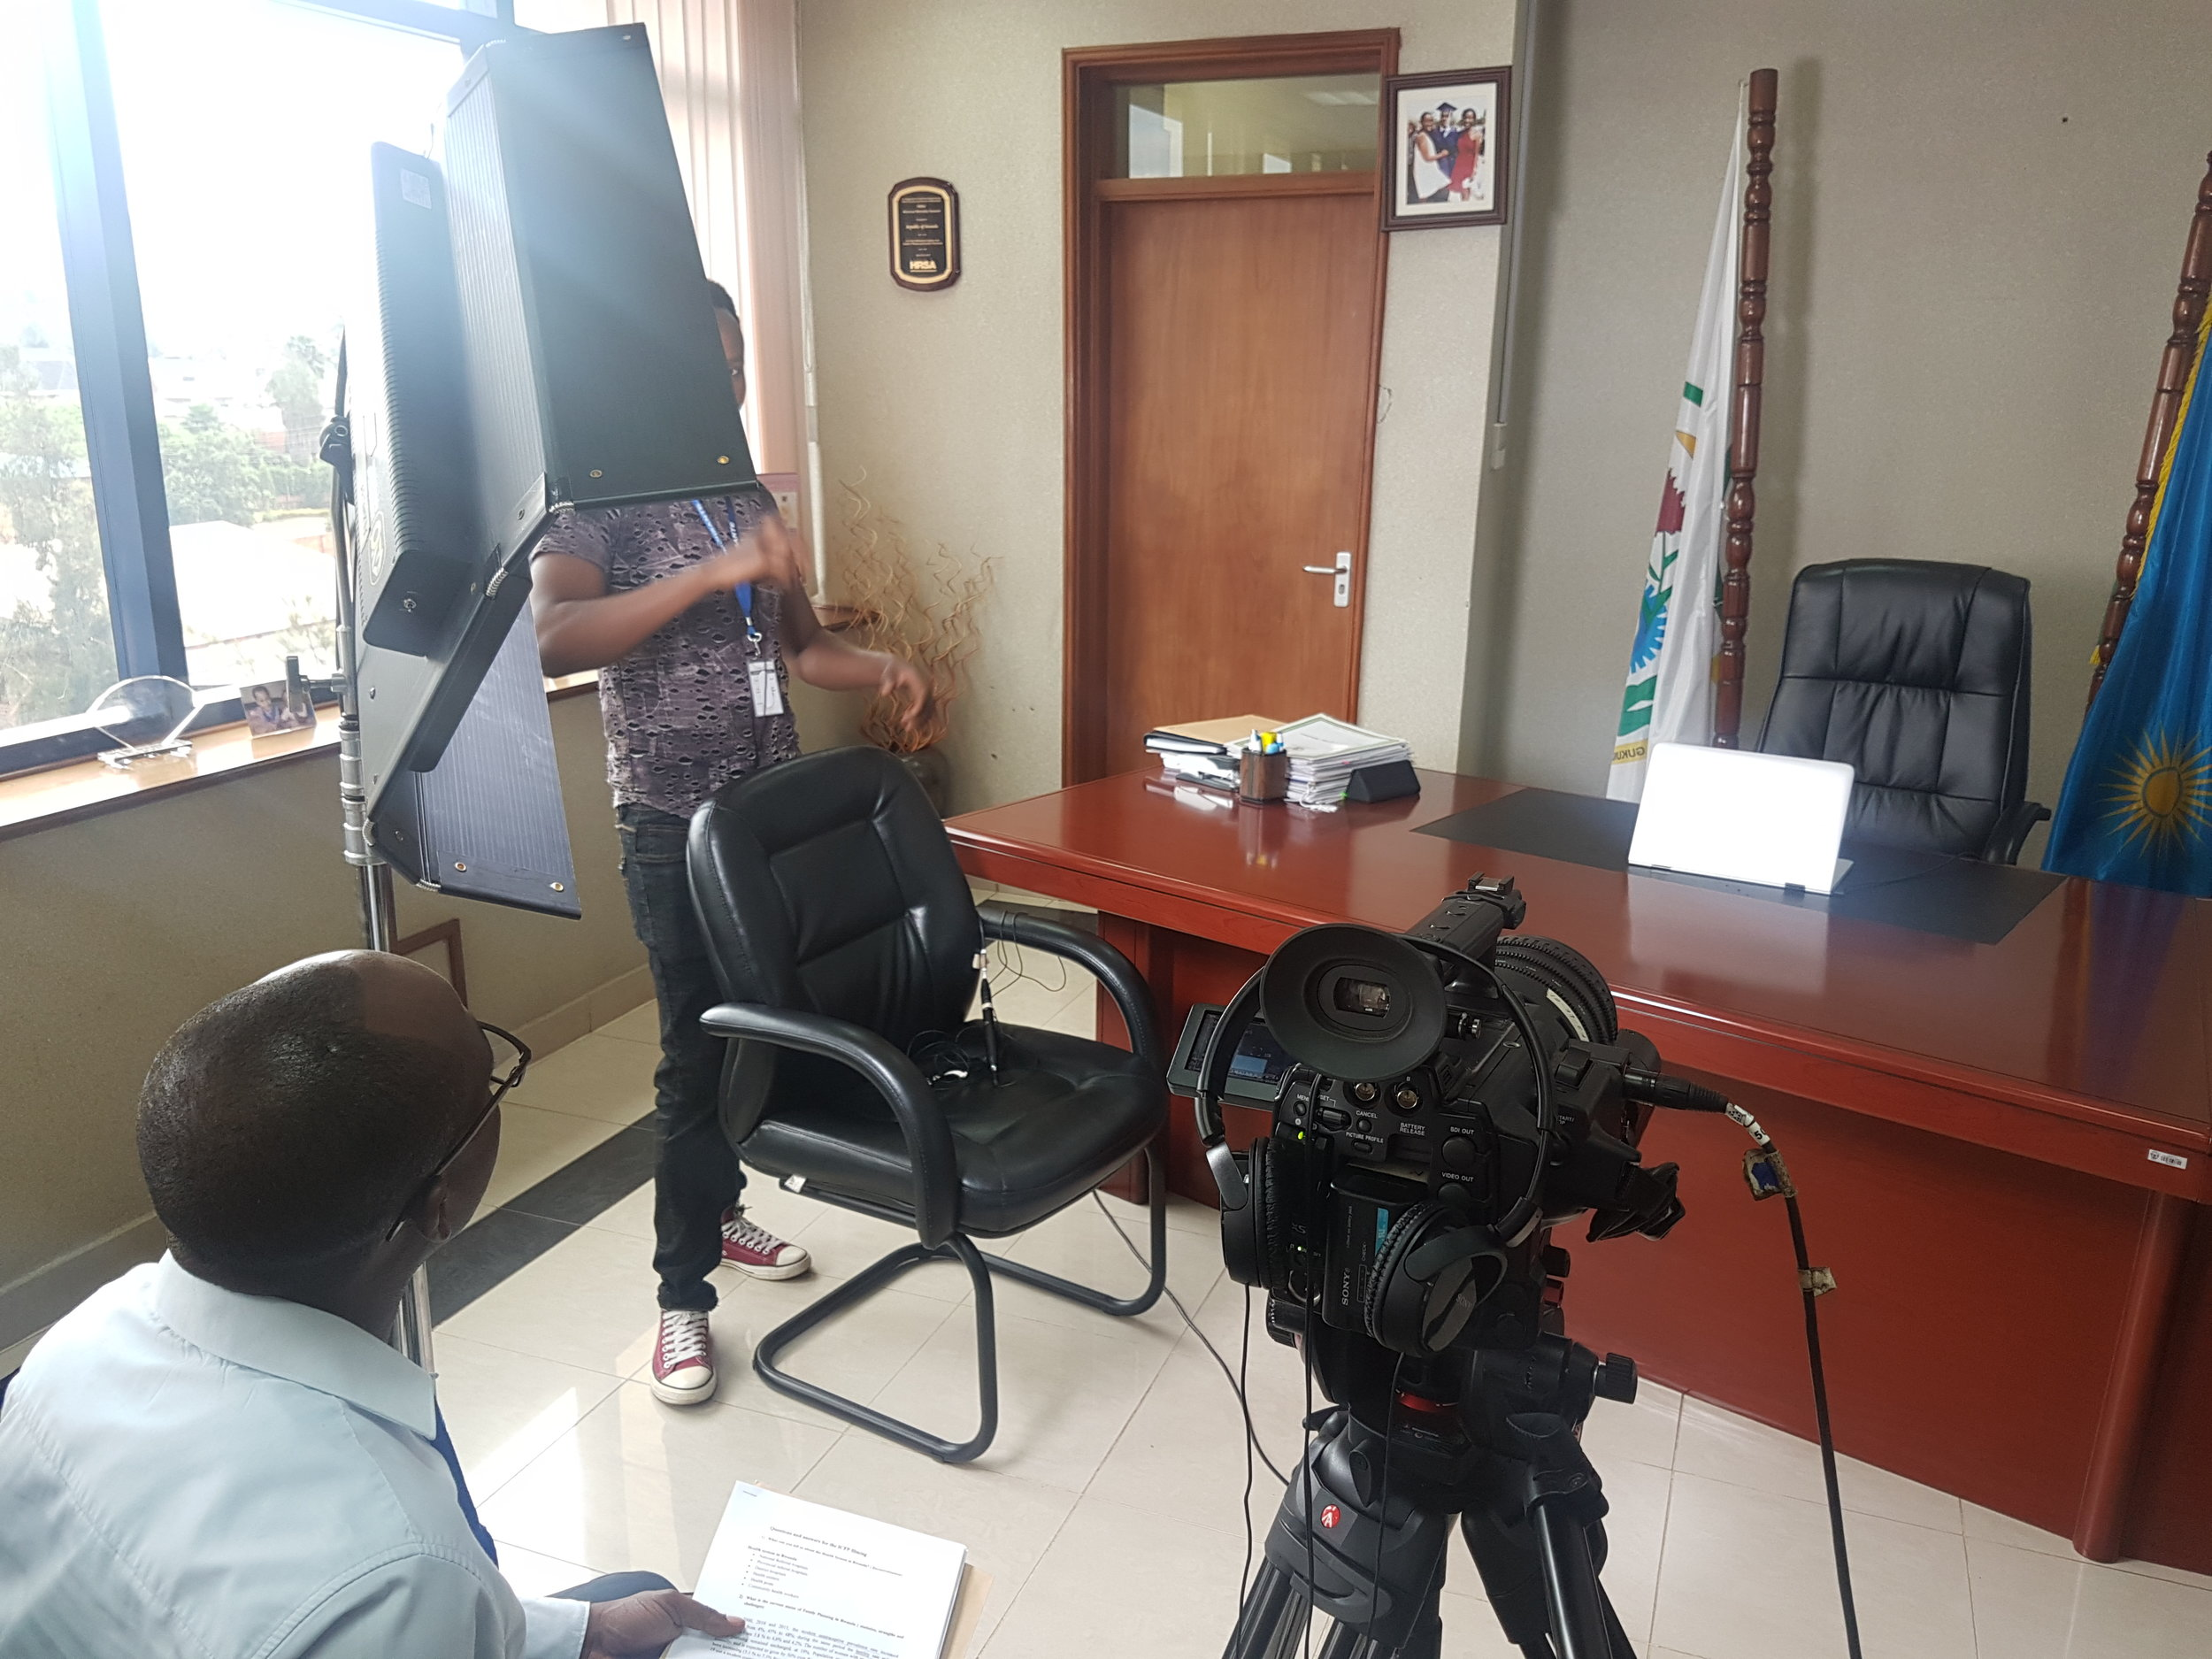 The Kino Flo Diva 401 light, Sony PMWF3, and student Hirwa Yves (behind the light) getting ready for the interview.